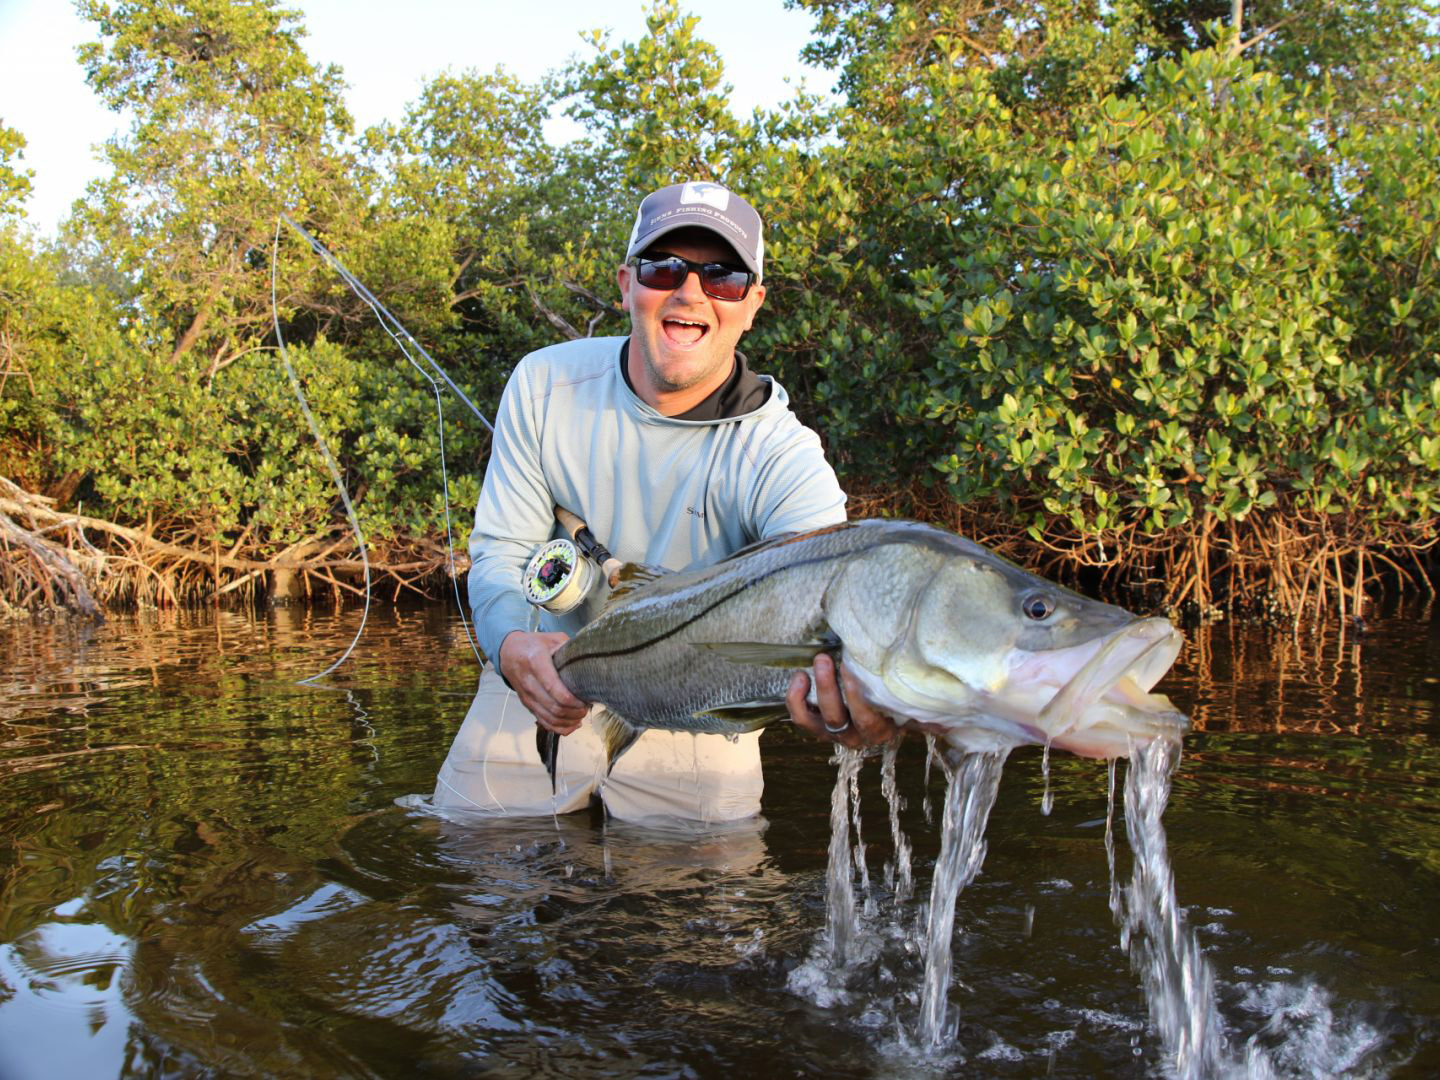 A man holding a Snook in the inshore waters of Boca Grande, Florida